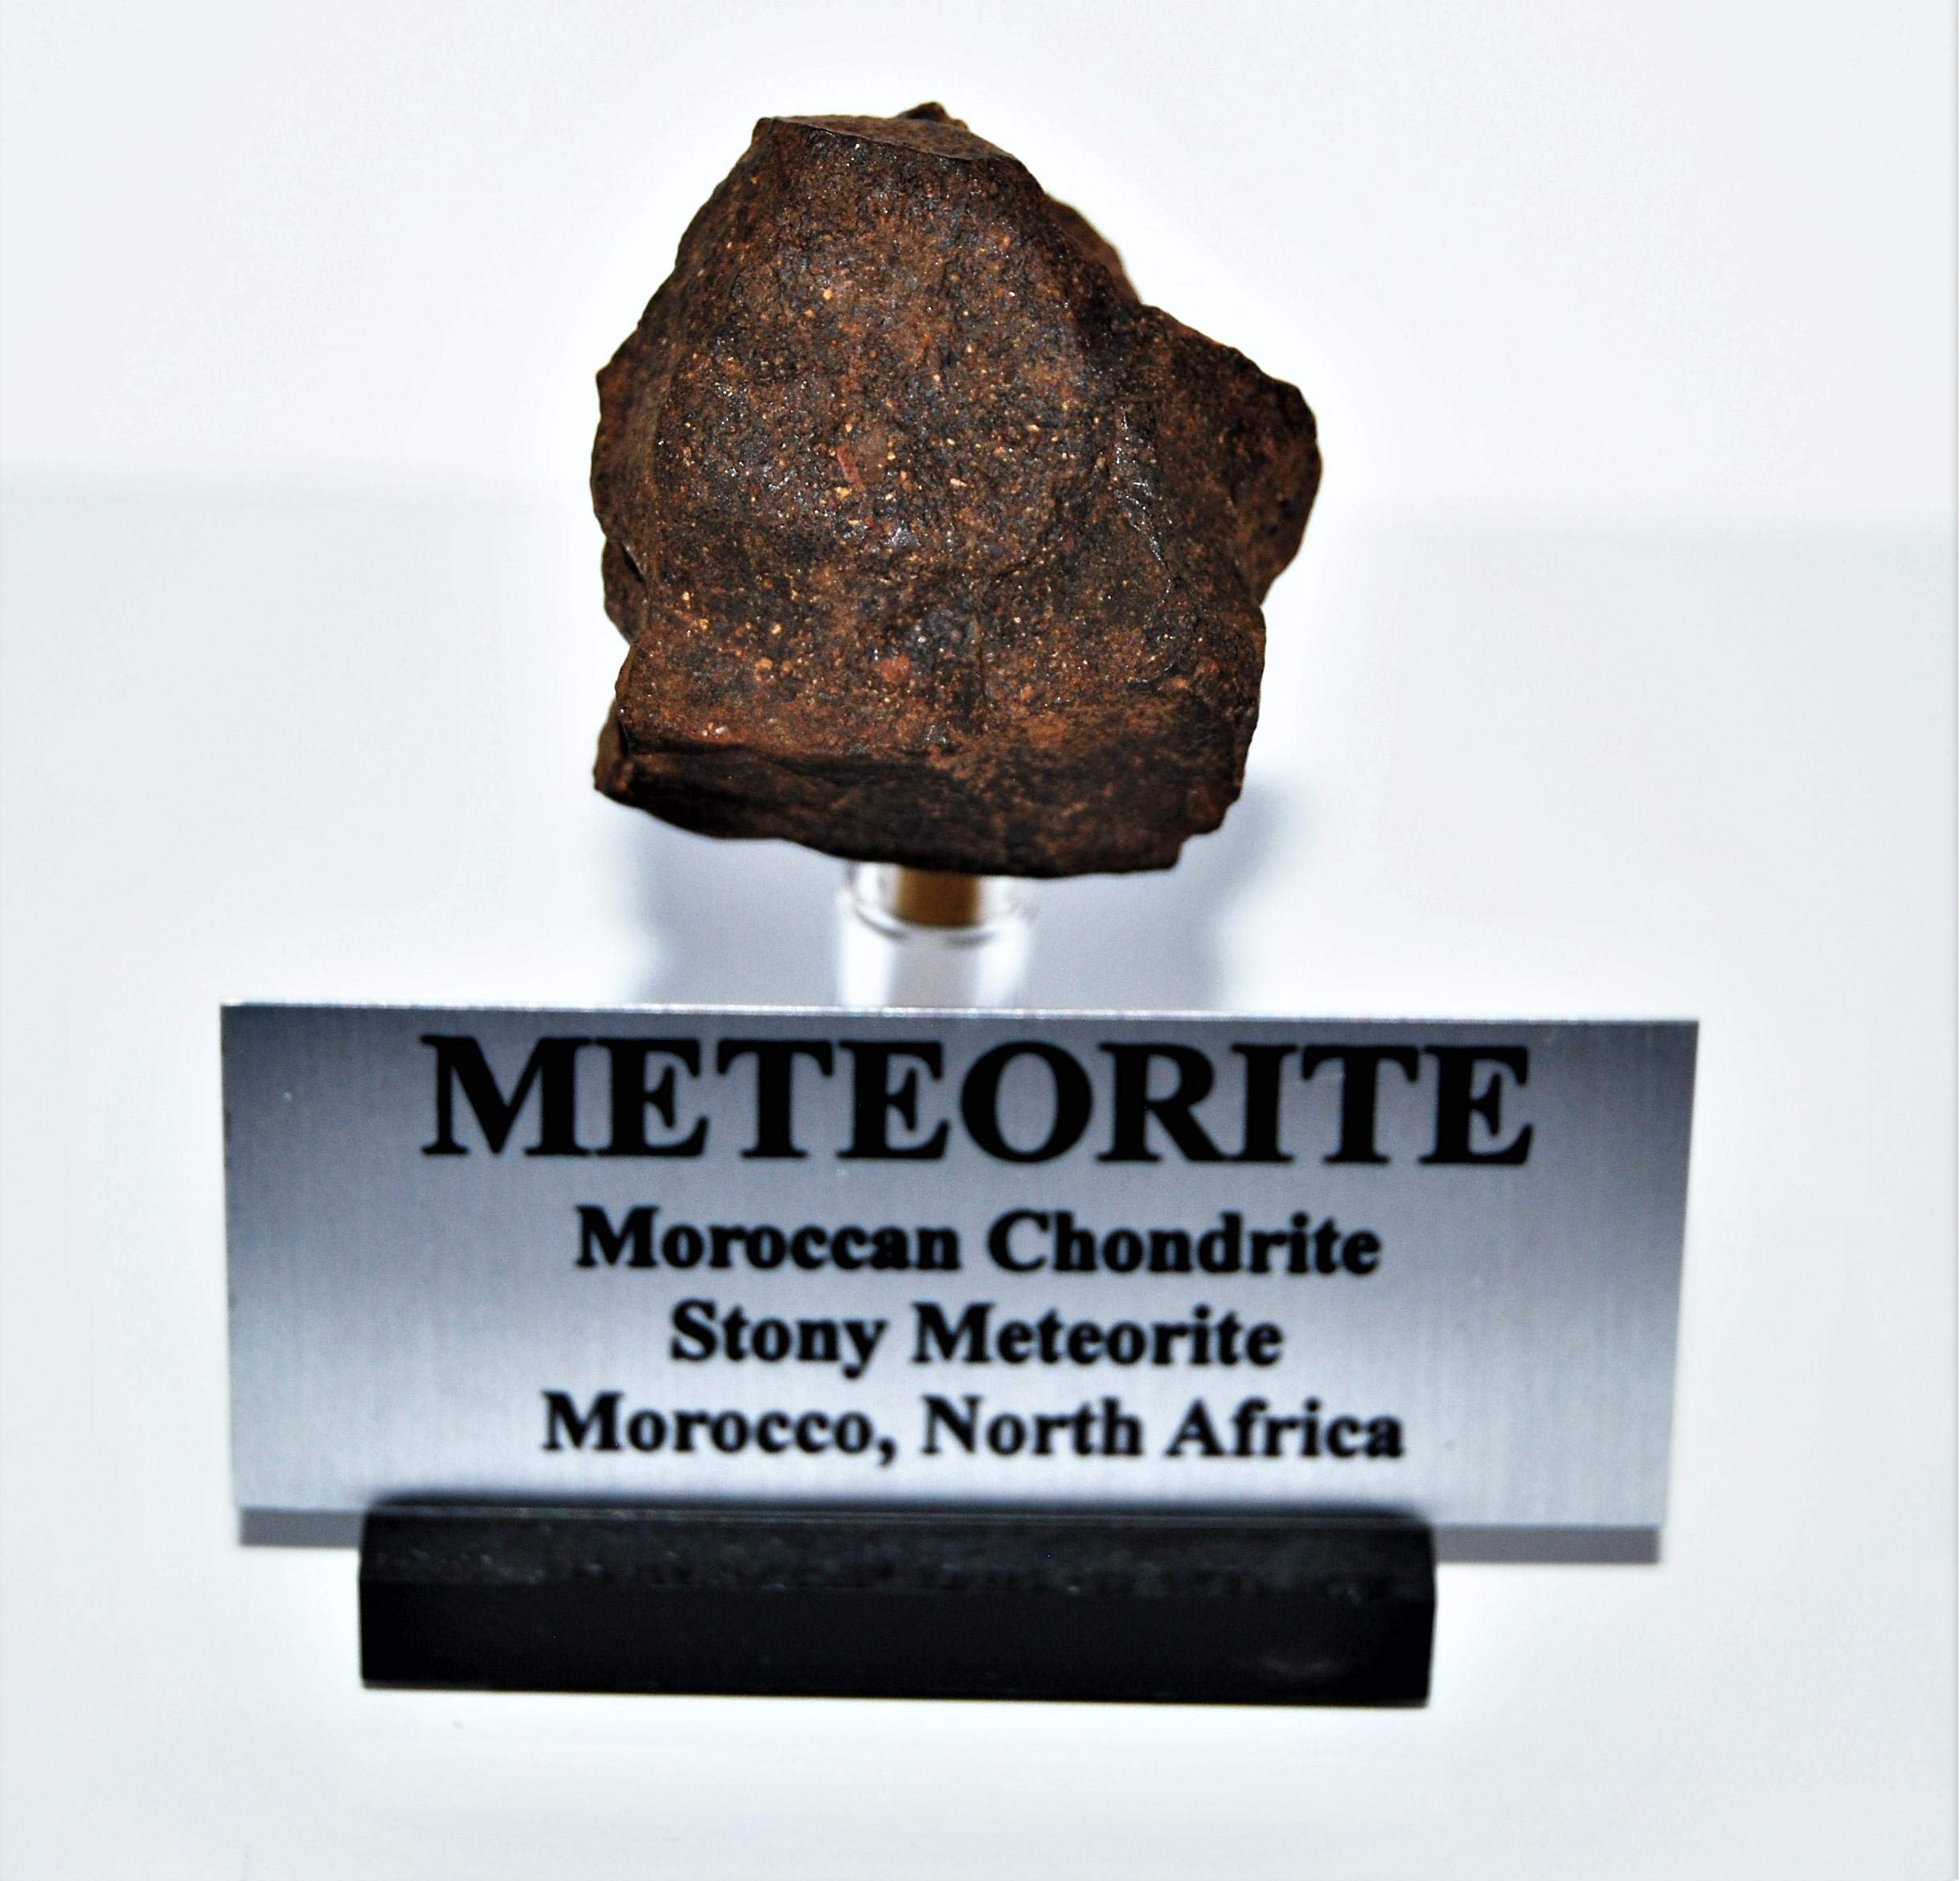 Fossils, Meteorites, & More Moroccan Chondrite 58.8 Grams w/Acrylic Display Stand, Label, COA #14307 7o